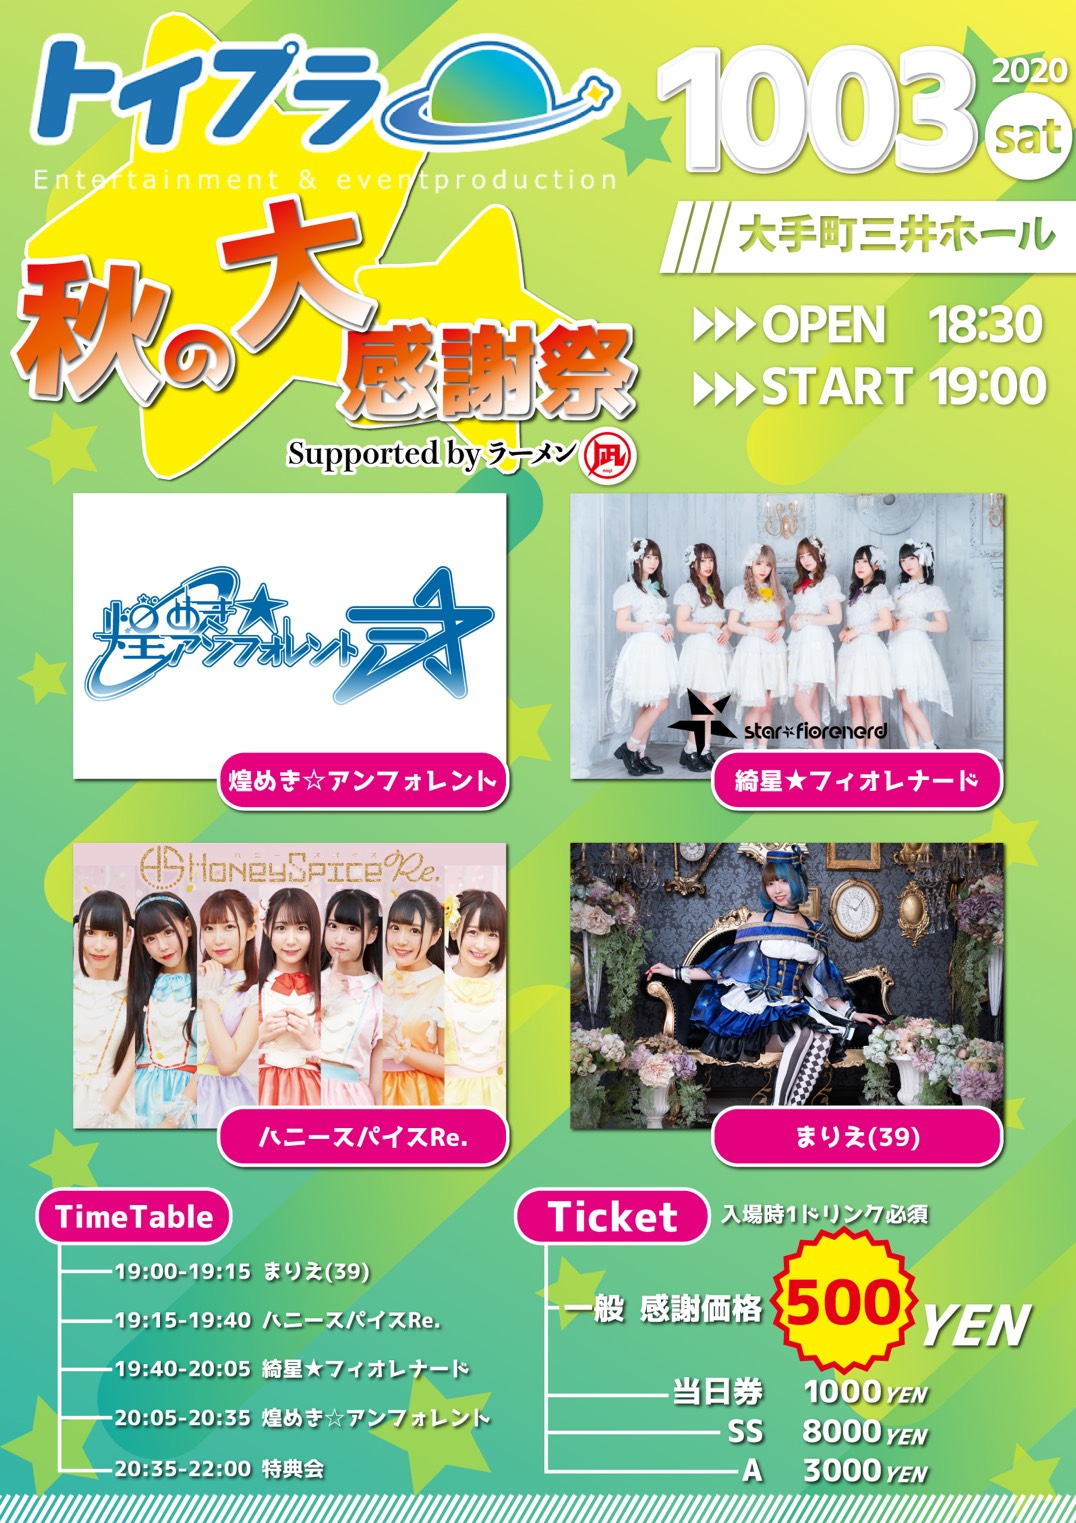 ⭐️トイプラ秋の大感謝祭⭐️ in Tokyo⭐️⭐️⭐️ ~Supported by ラーメン凪~